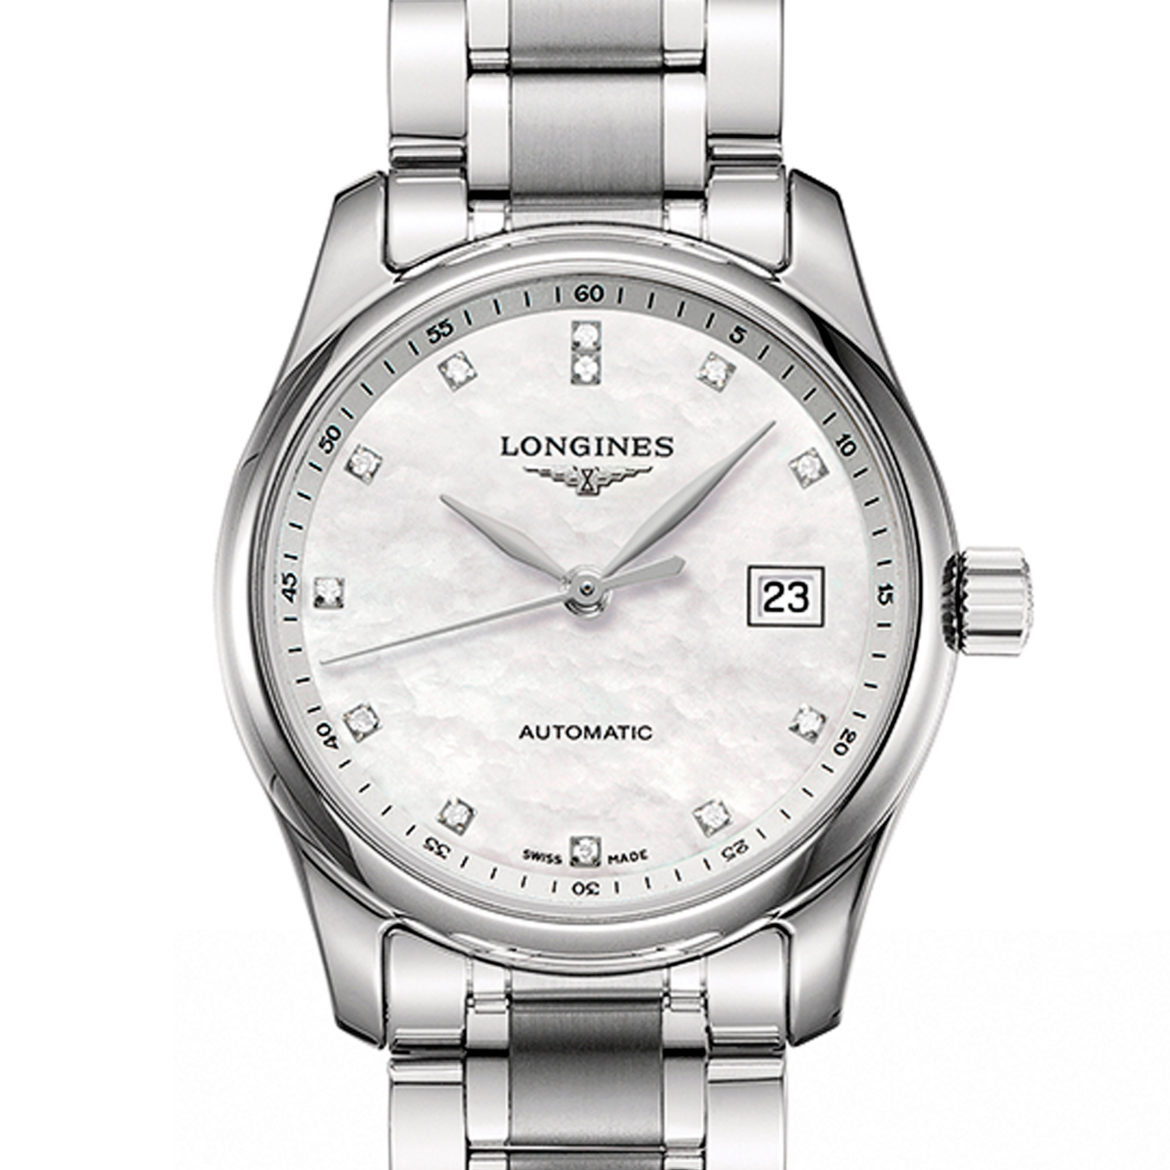 LONGINES</br/>The Longines Master Collection </br/>L22574876